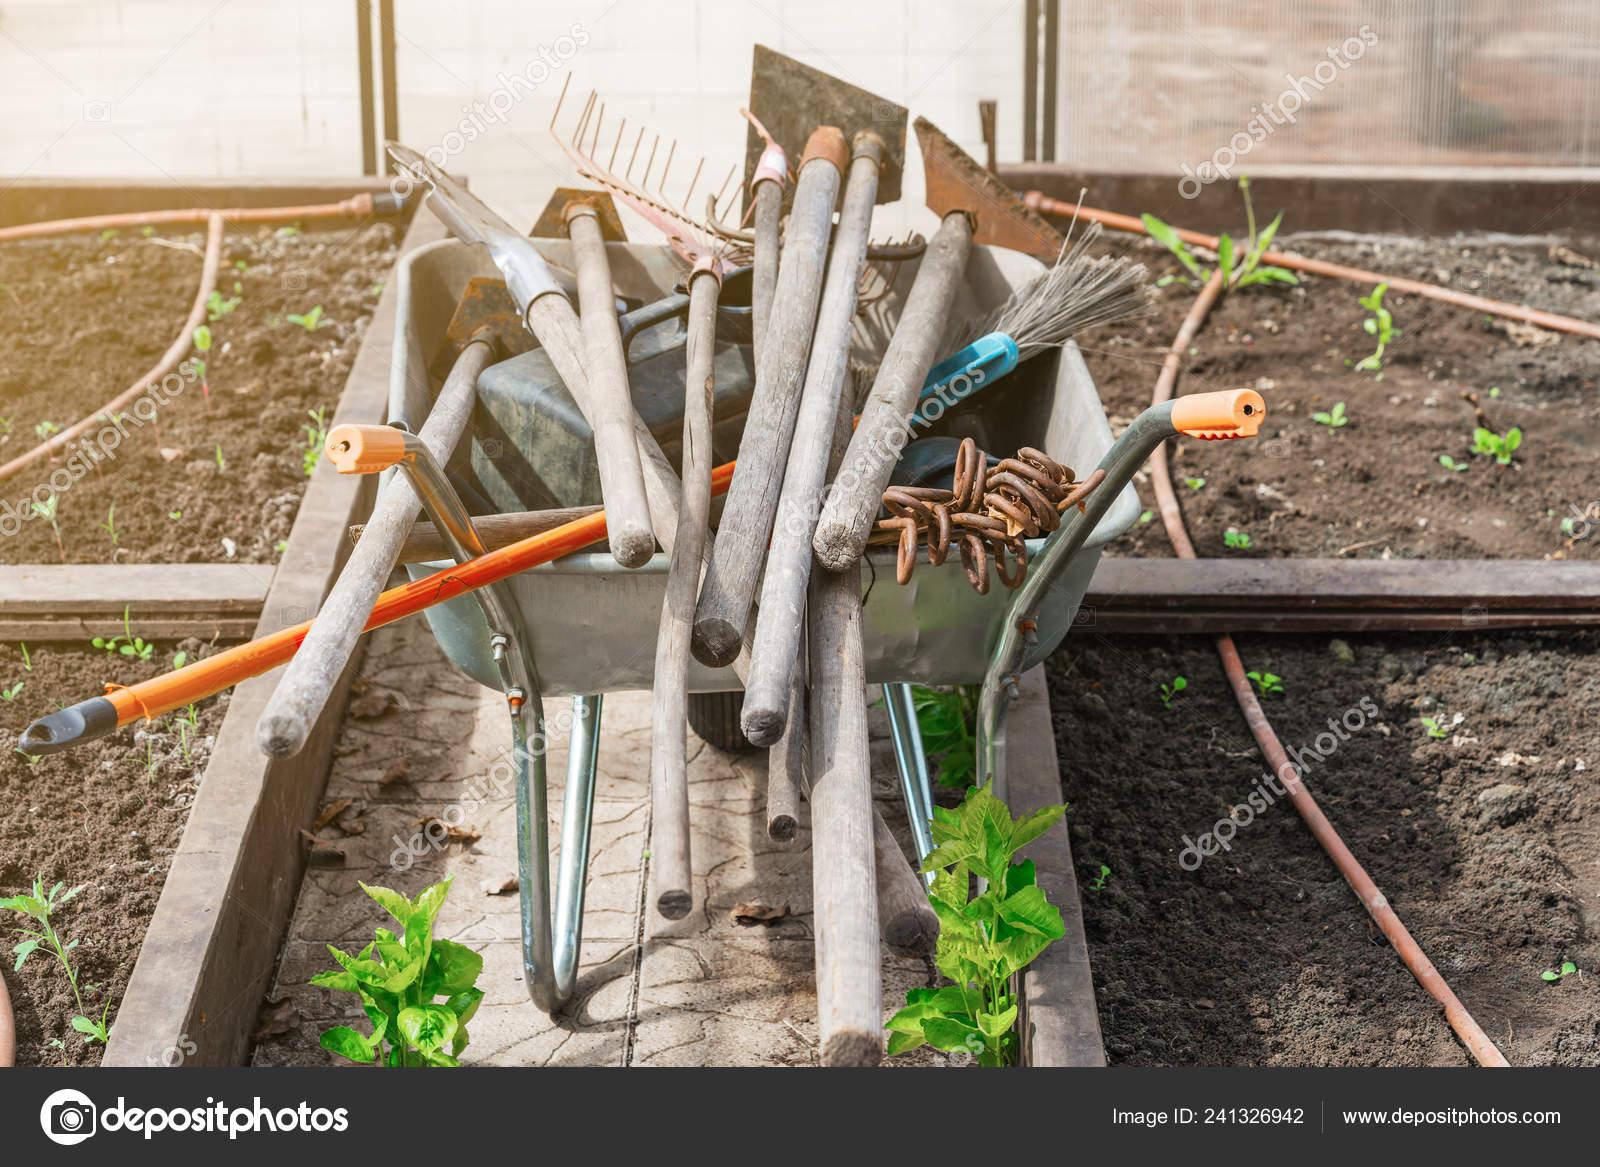 Set Used Old Dirty Garden Tools Beds Greenhouse Rake Shovels